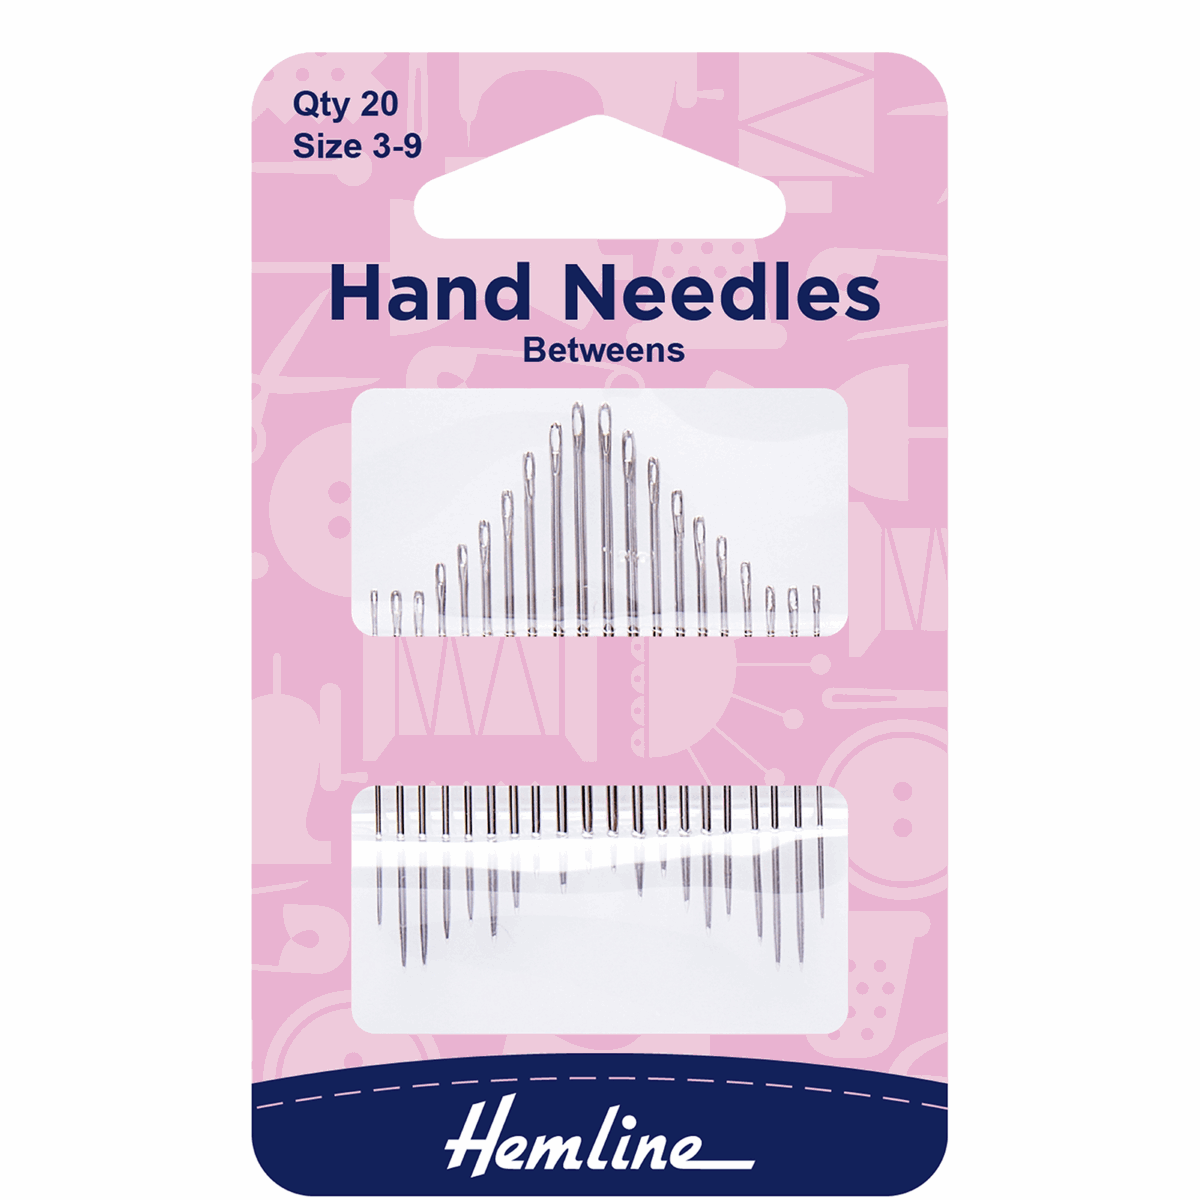 Picture of Hand Sewing Needles: Between/Quilting: Size 3-9